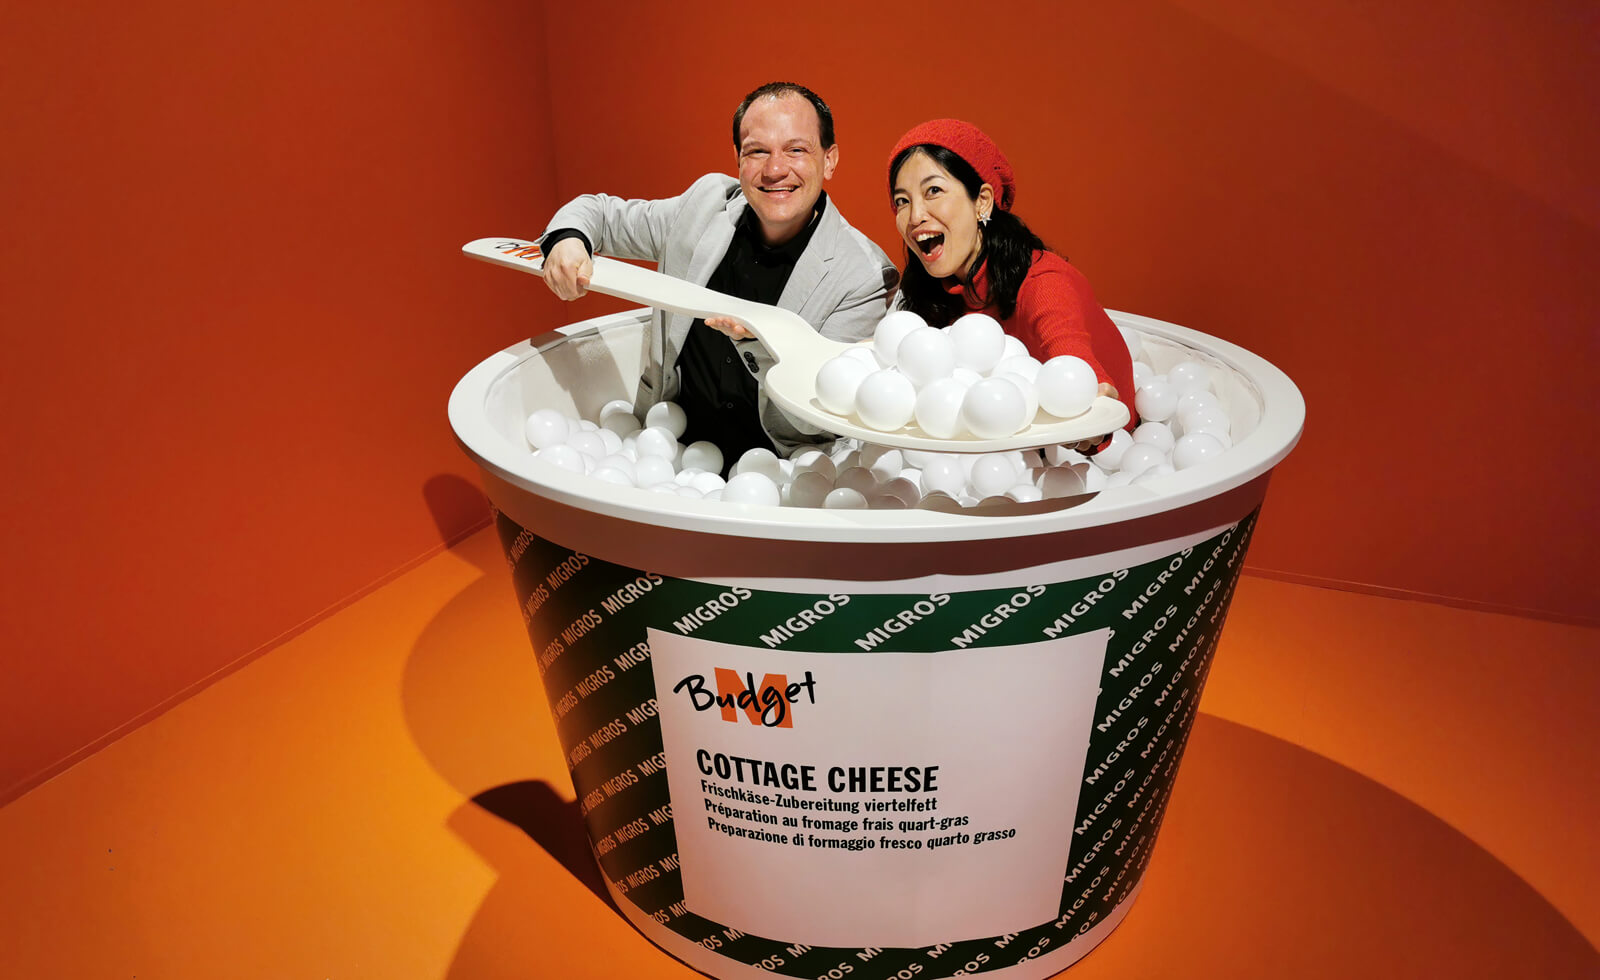 Selfiehouse Zürich - M-Budget Cottage Cheese